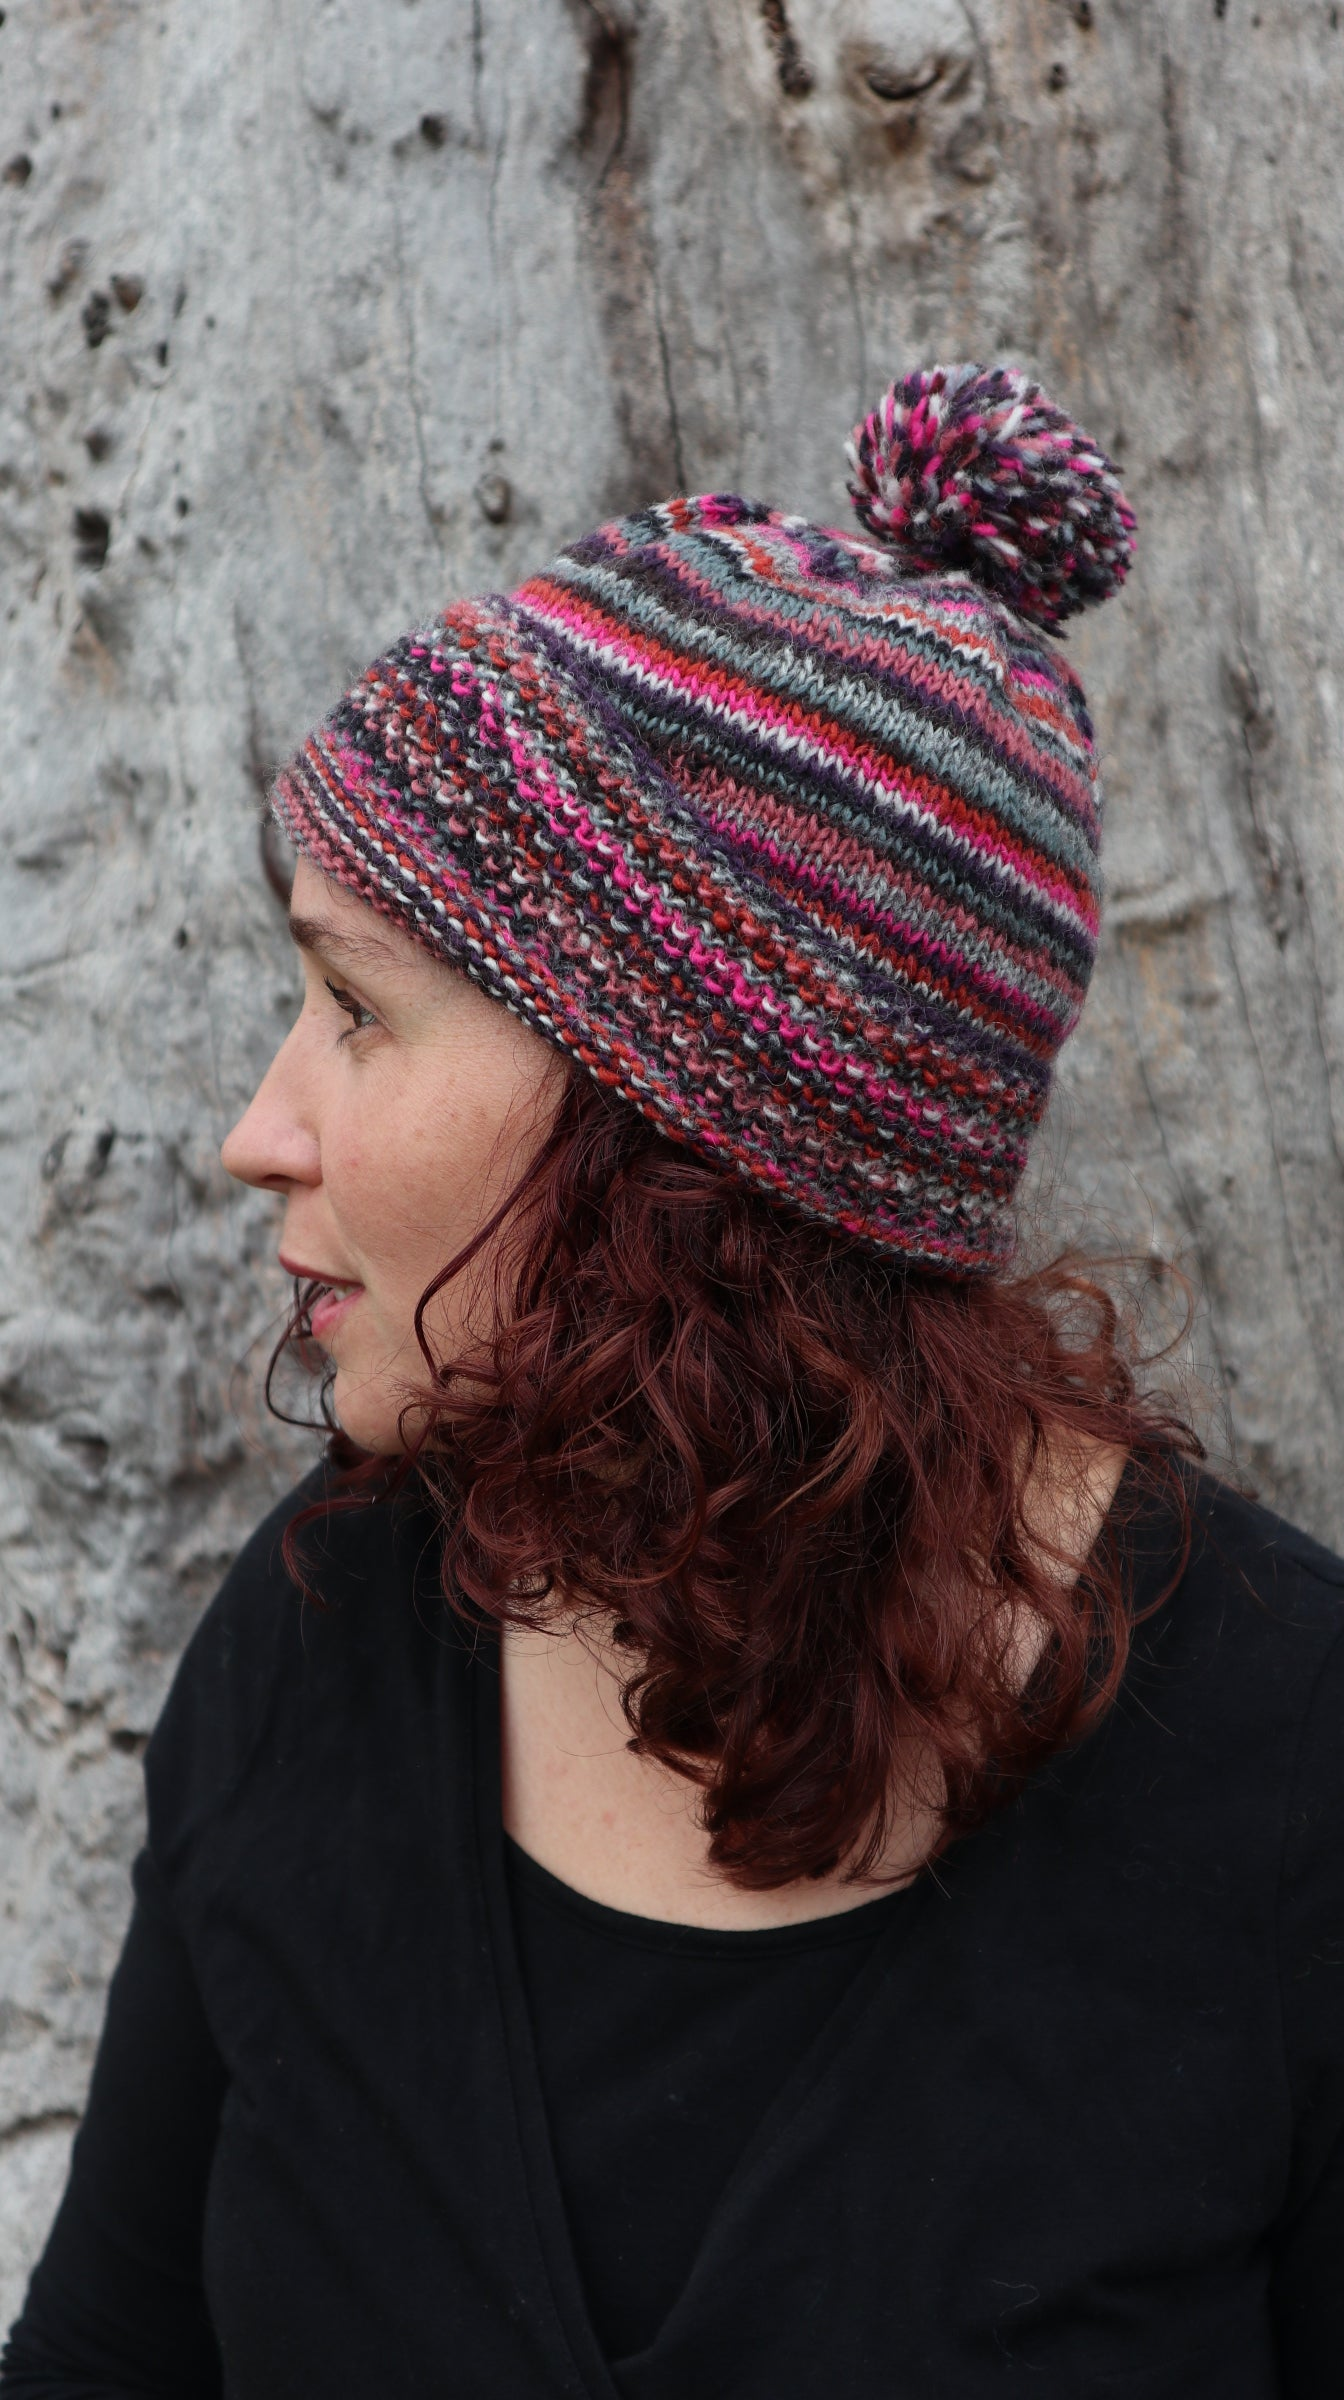 Fair Trade Ethical Woollen Beanie in Striped Multi Coloured Design with Pom Pom